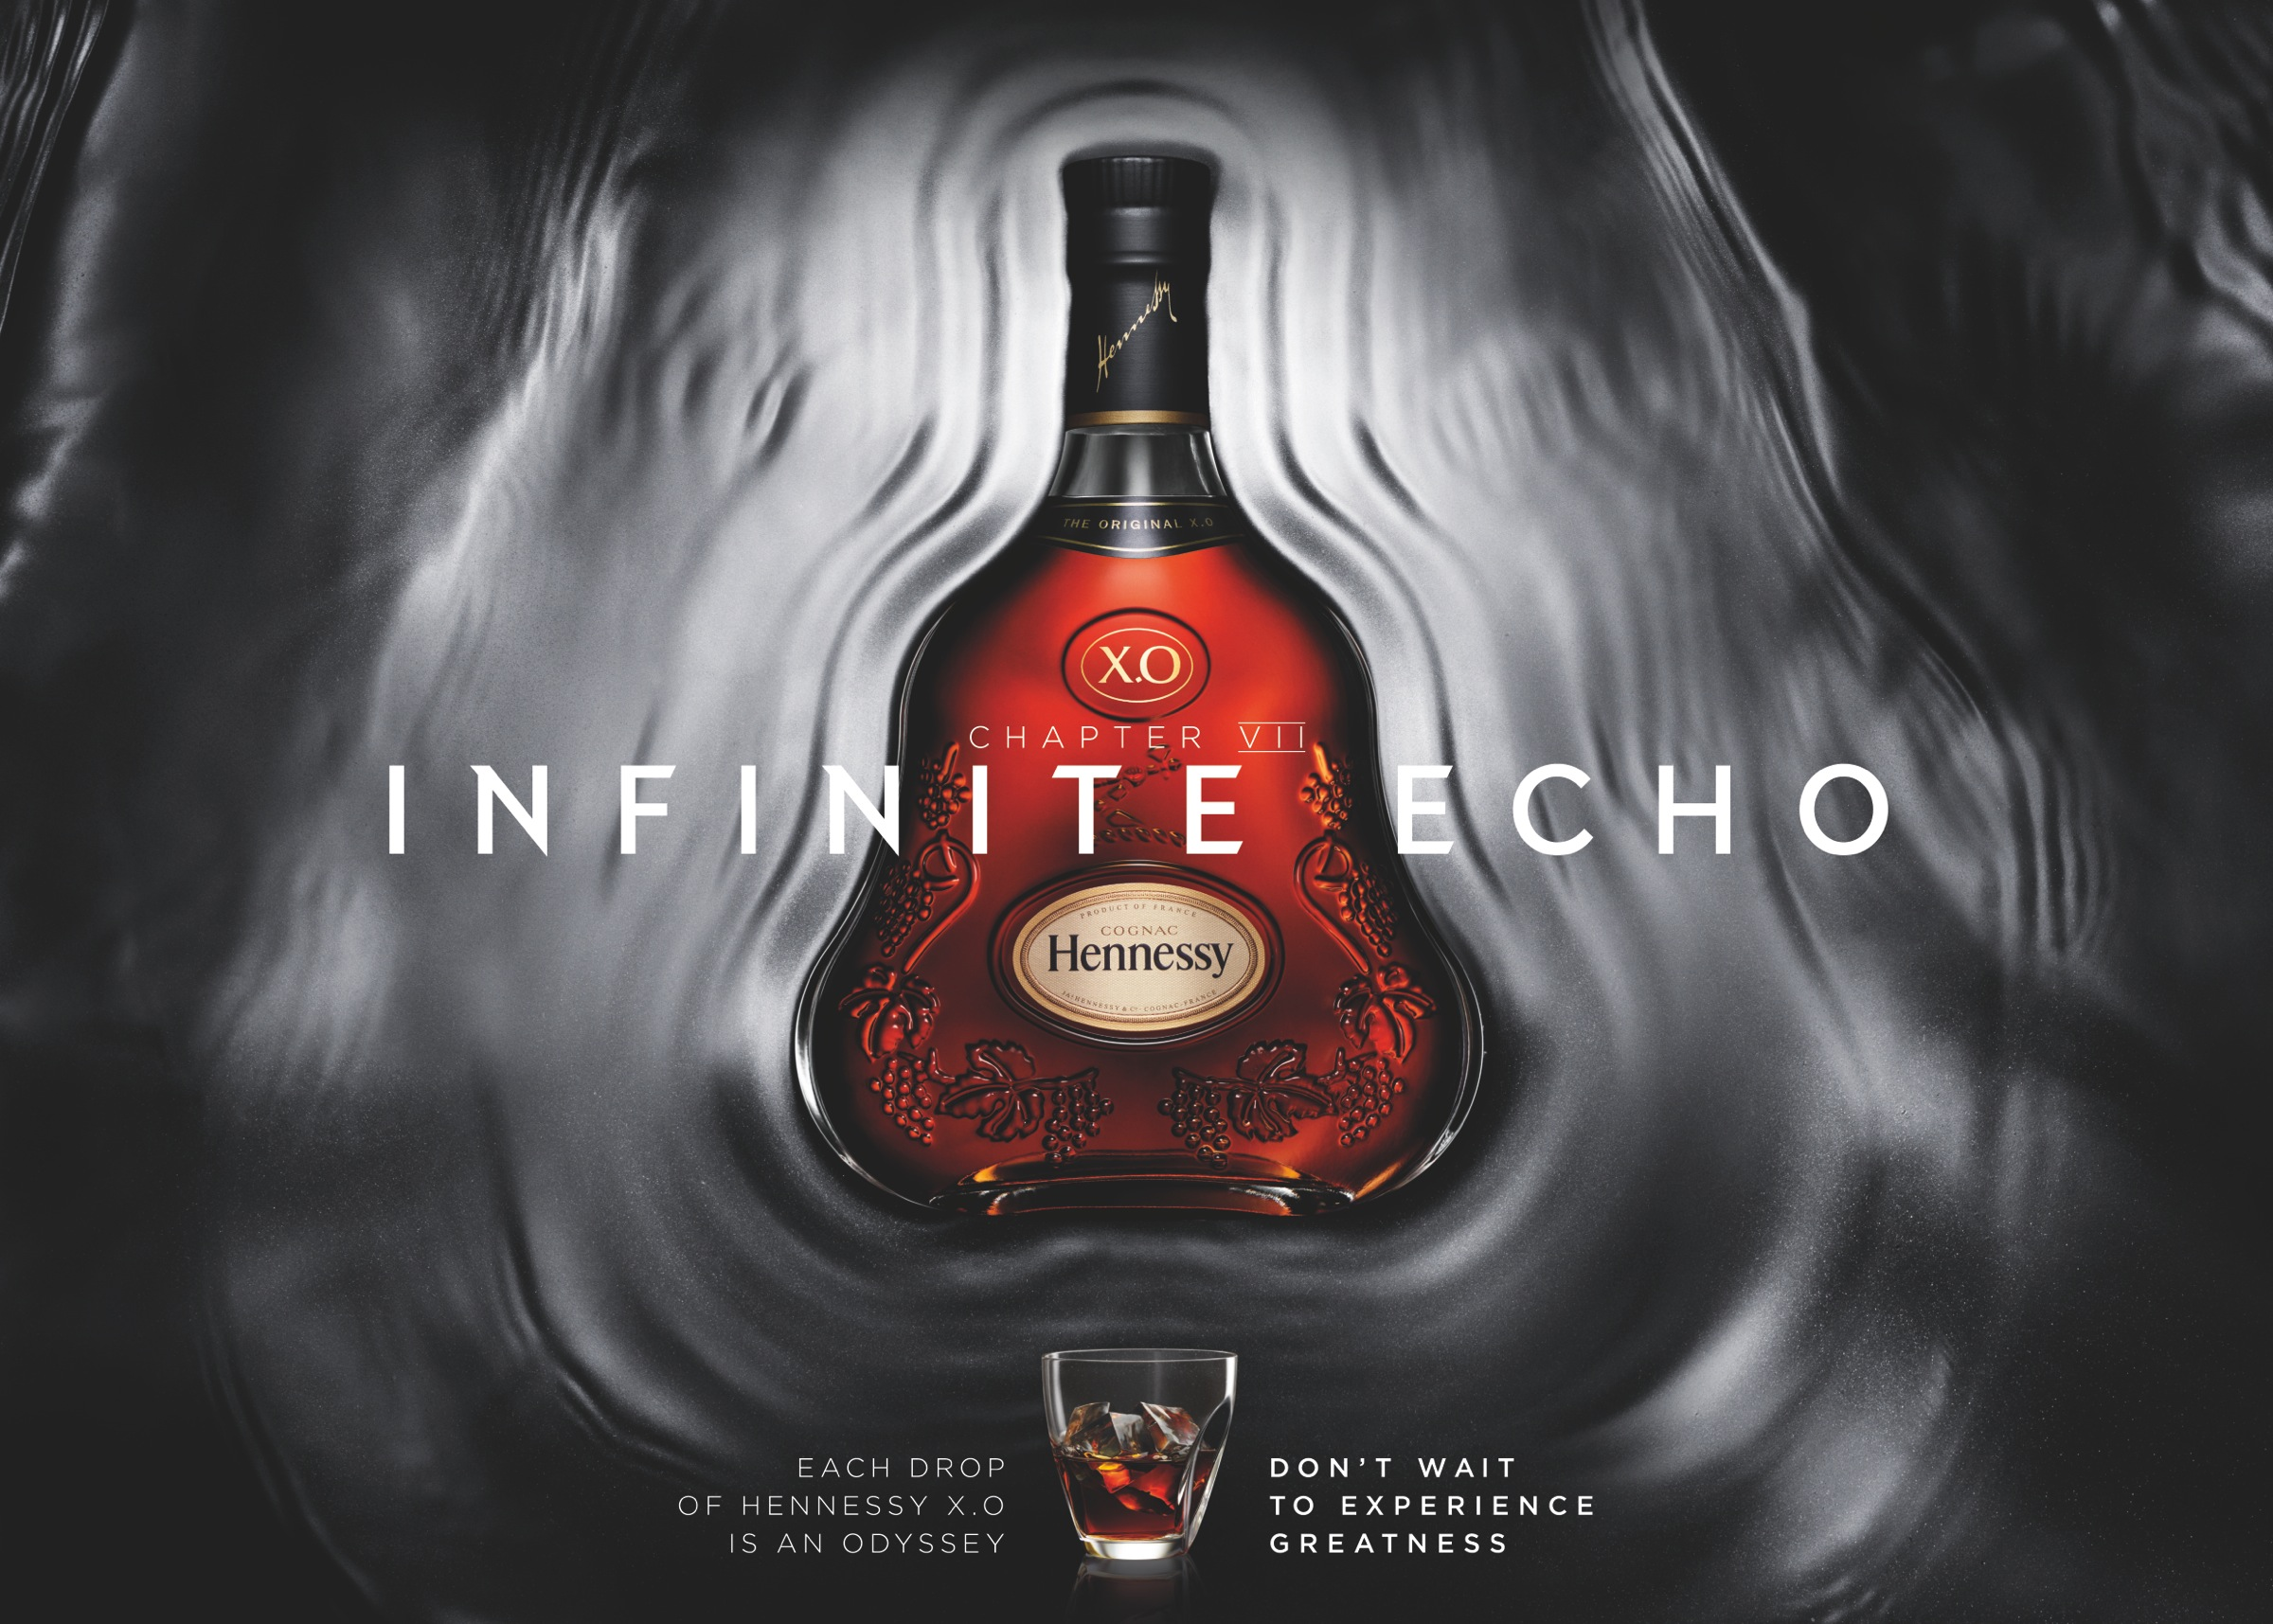 hennessy-xo-cognac-odyssey-ads-marketing-publicite-agence-ddb-paris-7